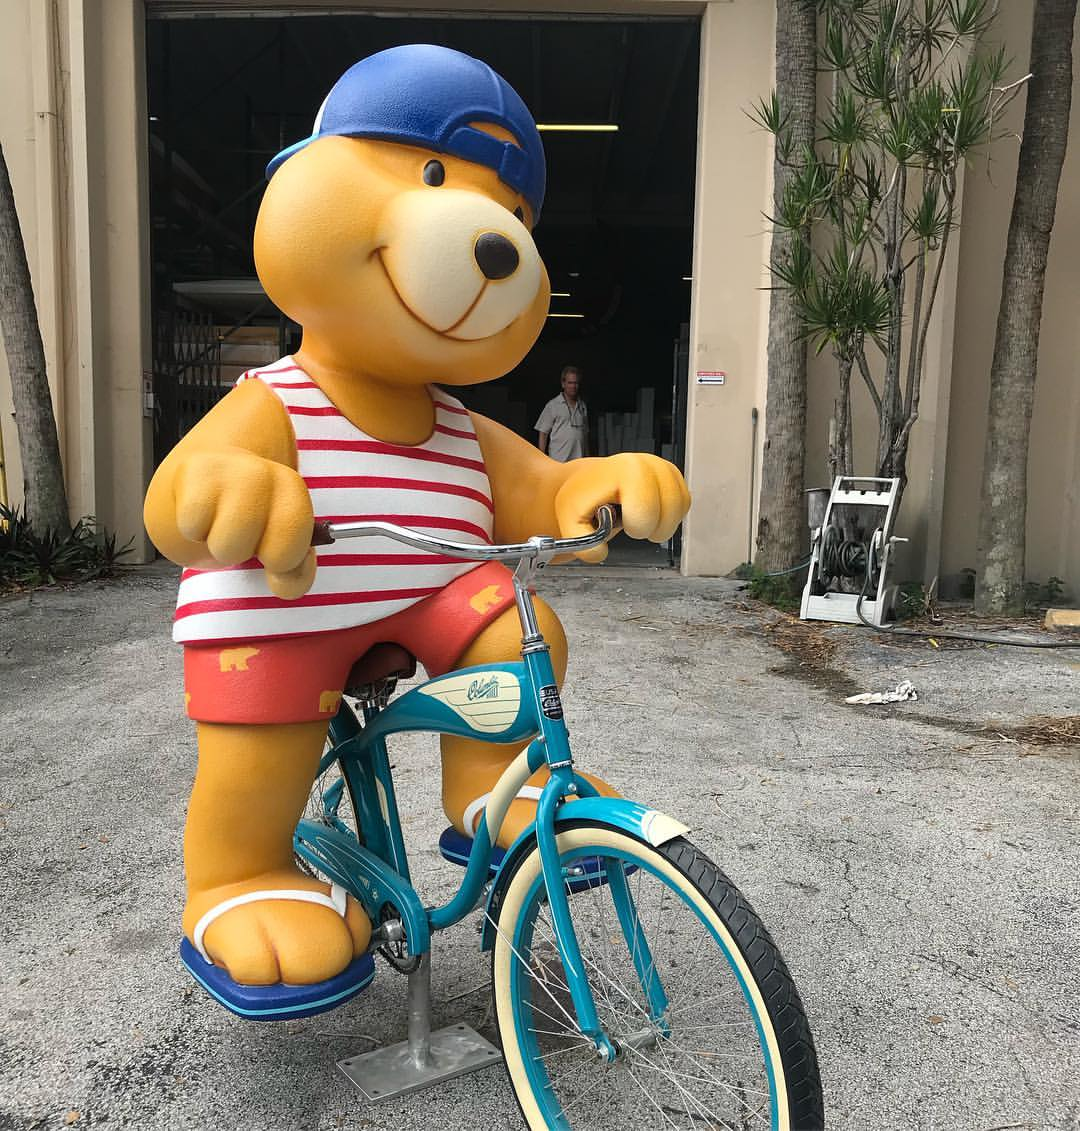 Golden_Bear_Bicicle